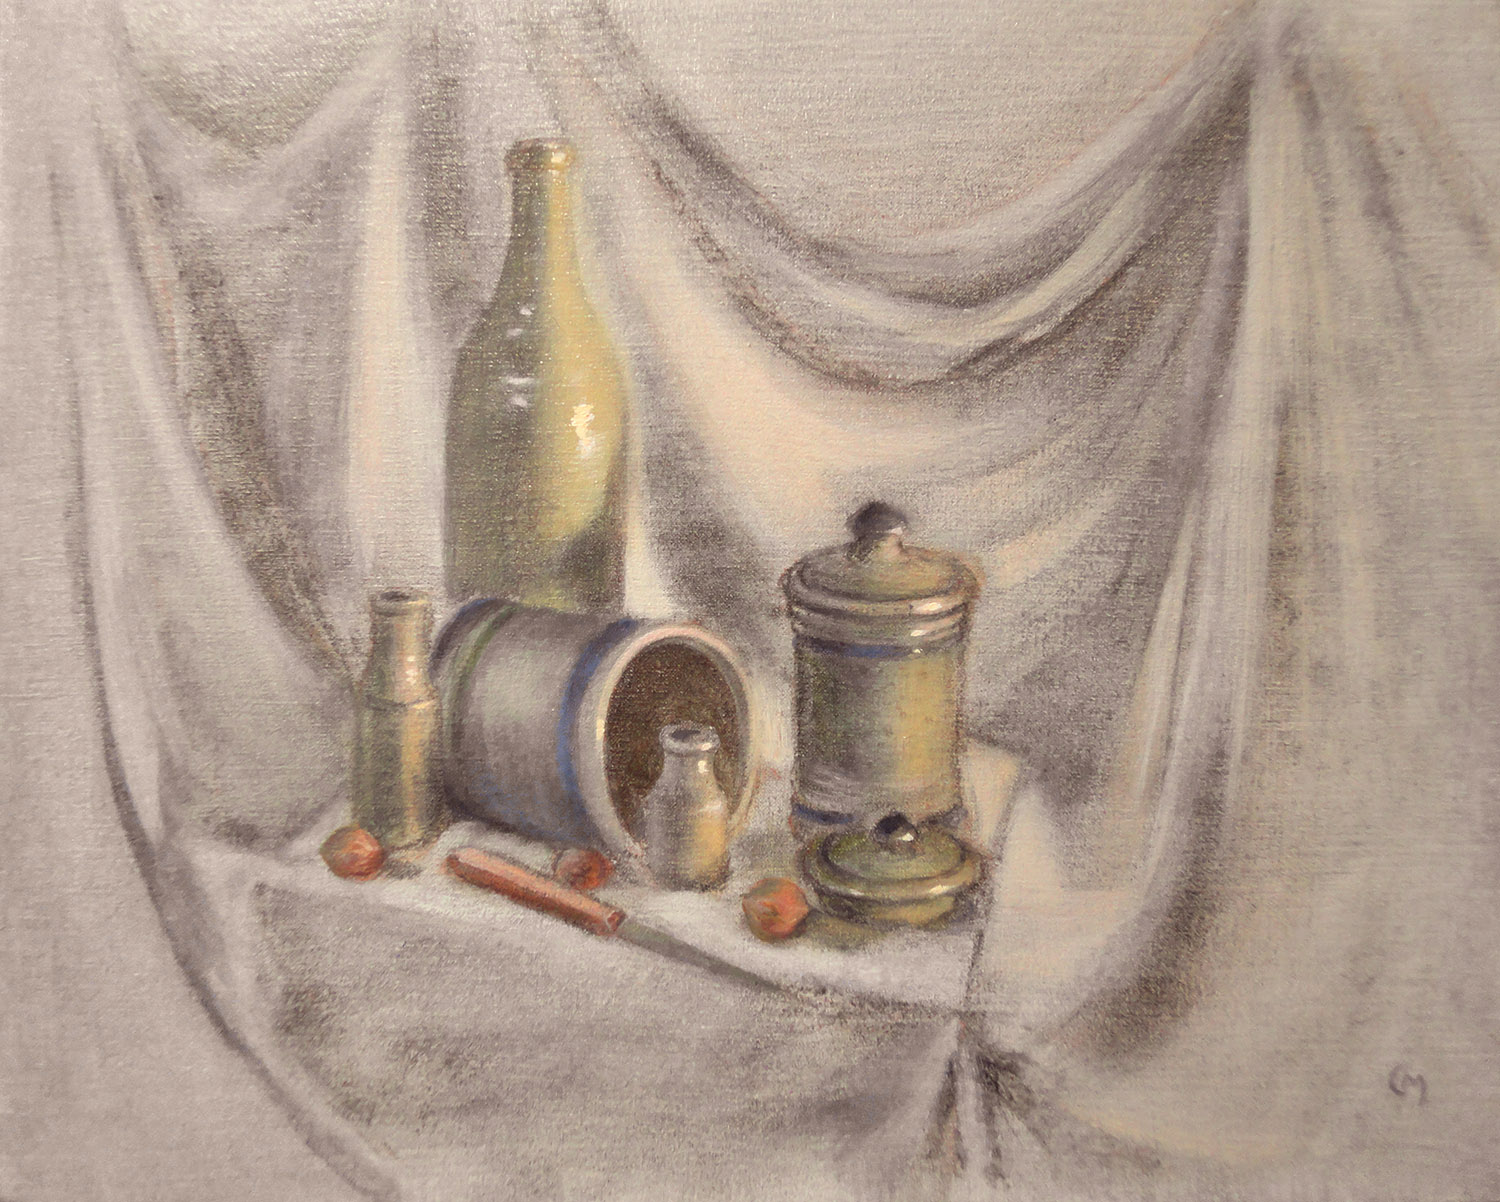 Atelier des fontaines cours natures mortes la technique mixte la mani re flamande 2 - Dessin de nature morte ...